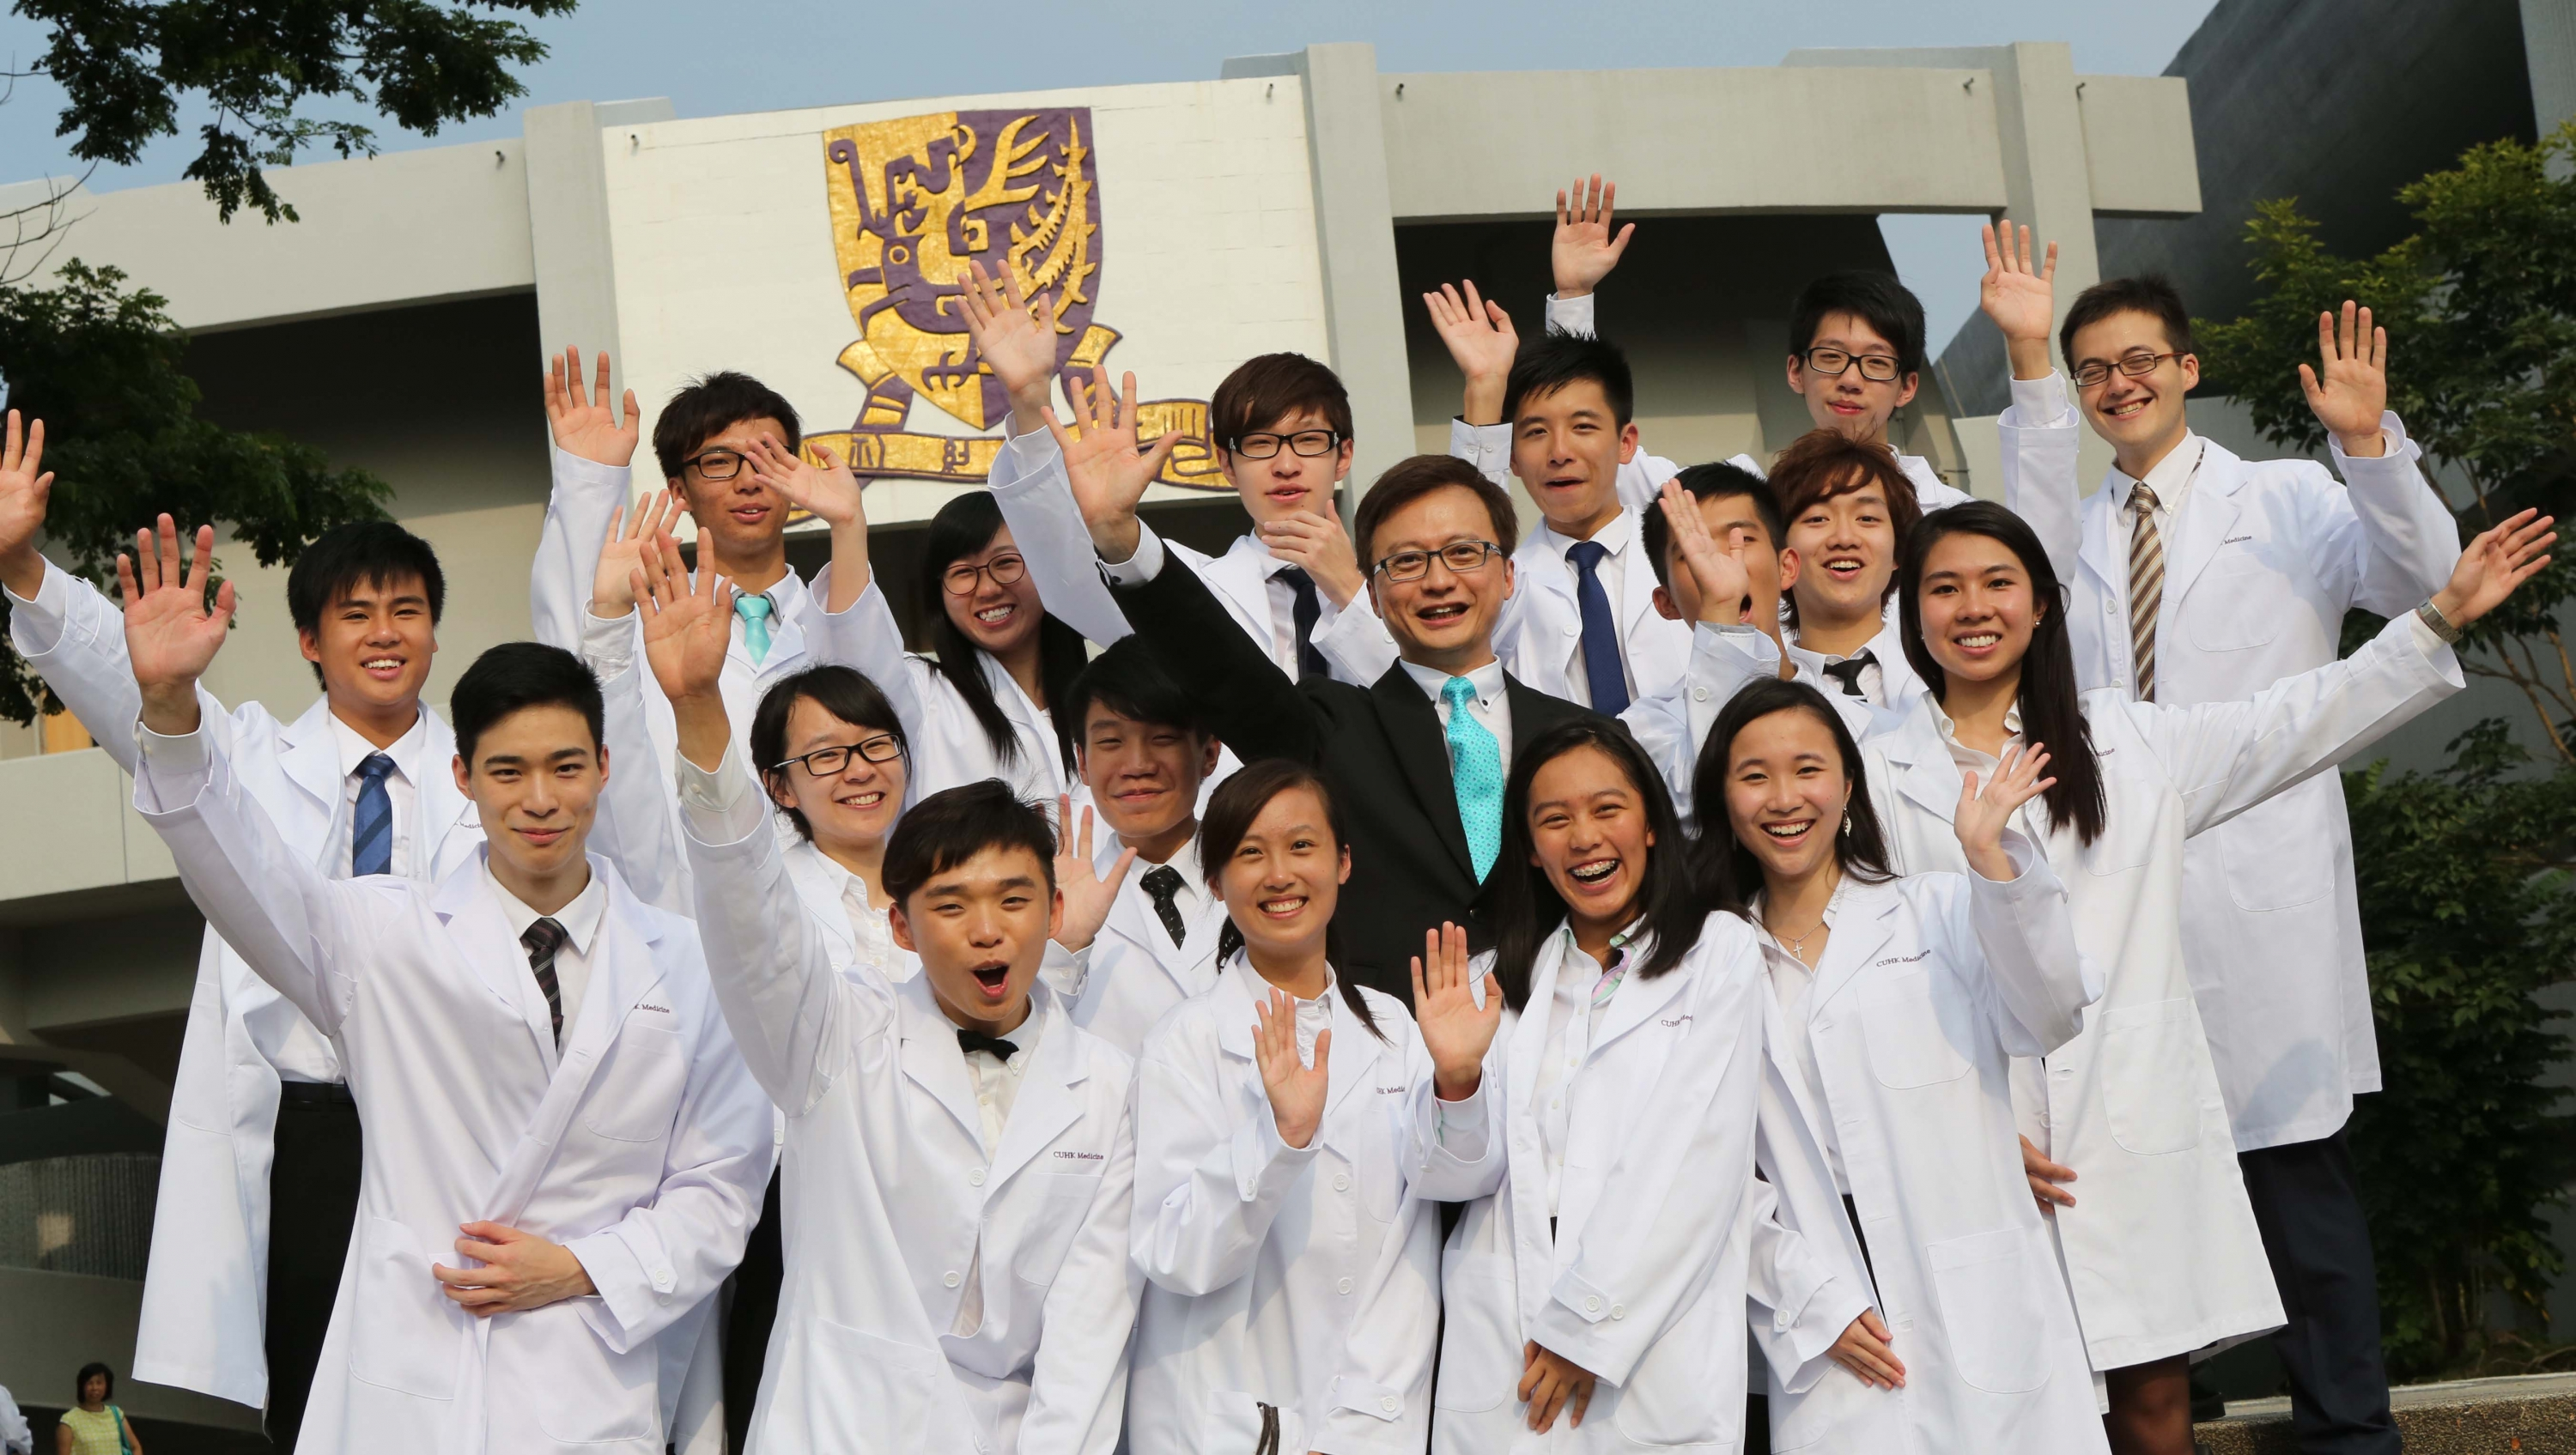 The white coat is a potent symbol for doctors. Putting on their white coats, the medical students will begin an exciting and momentous journey of discovery and learning.